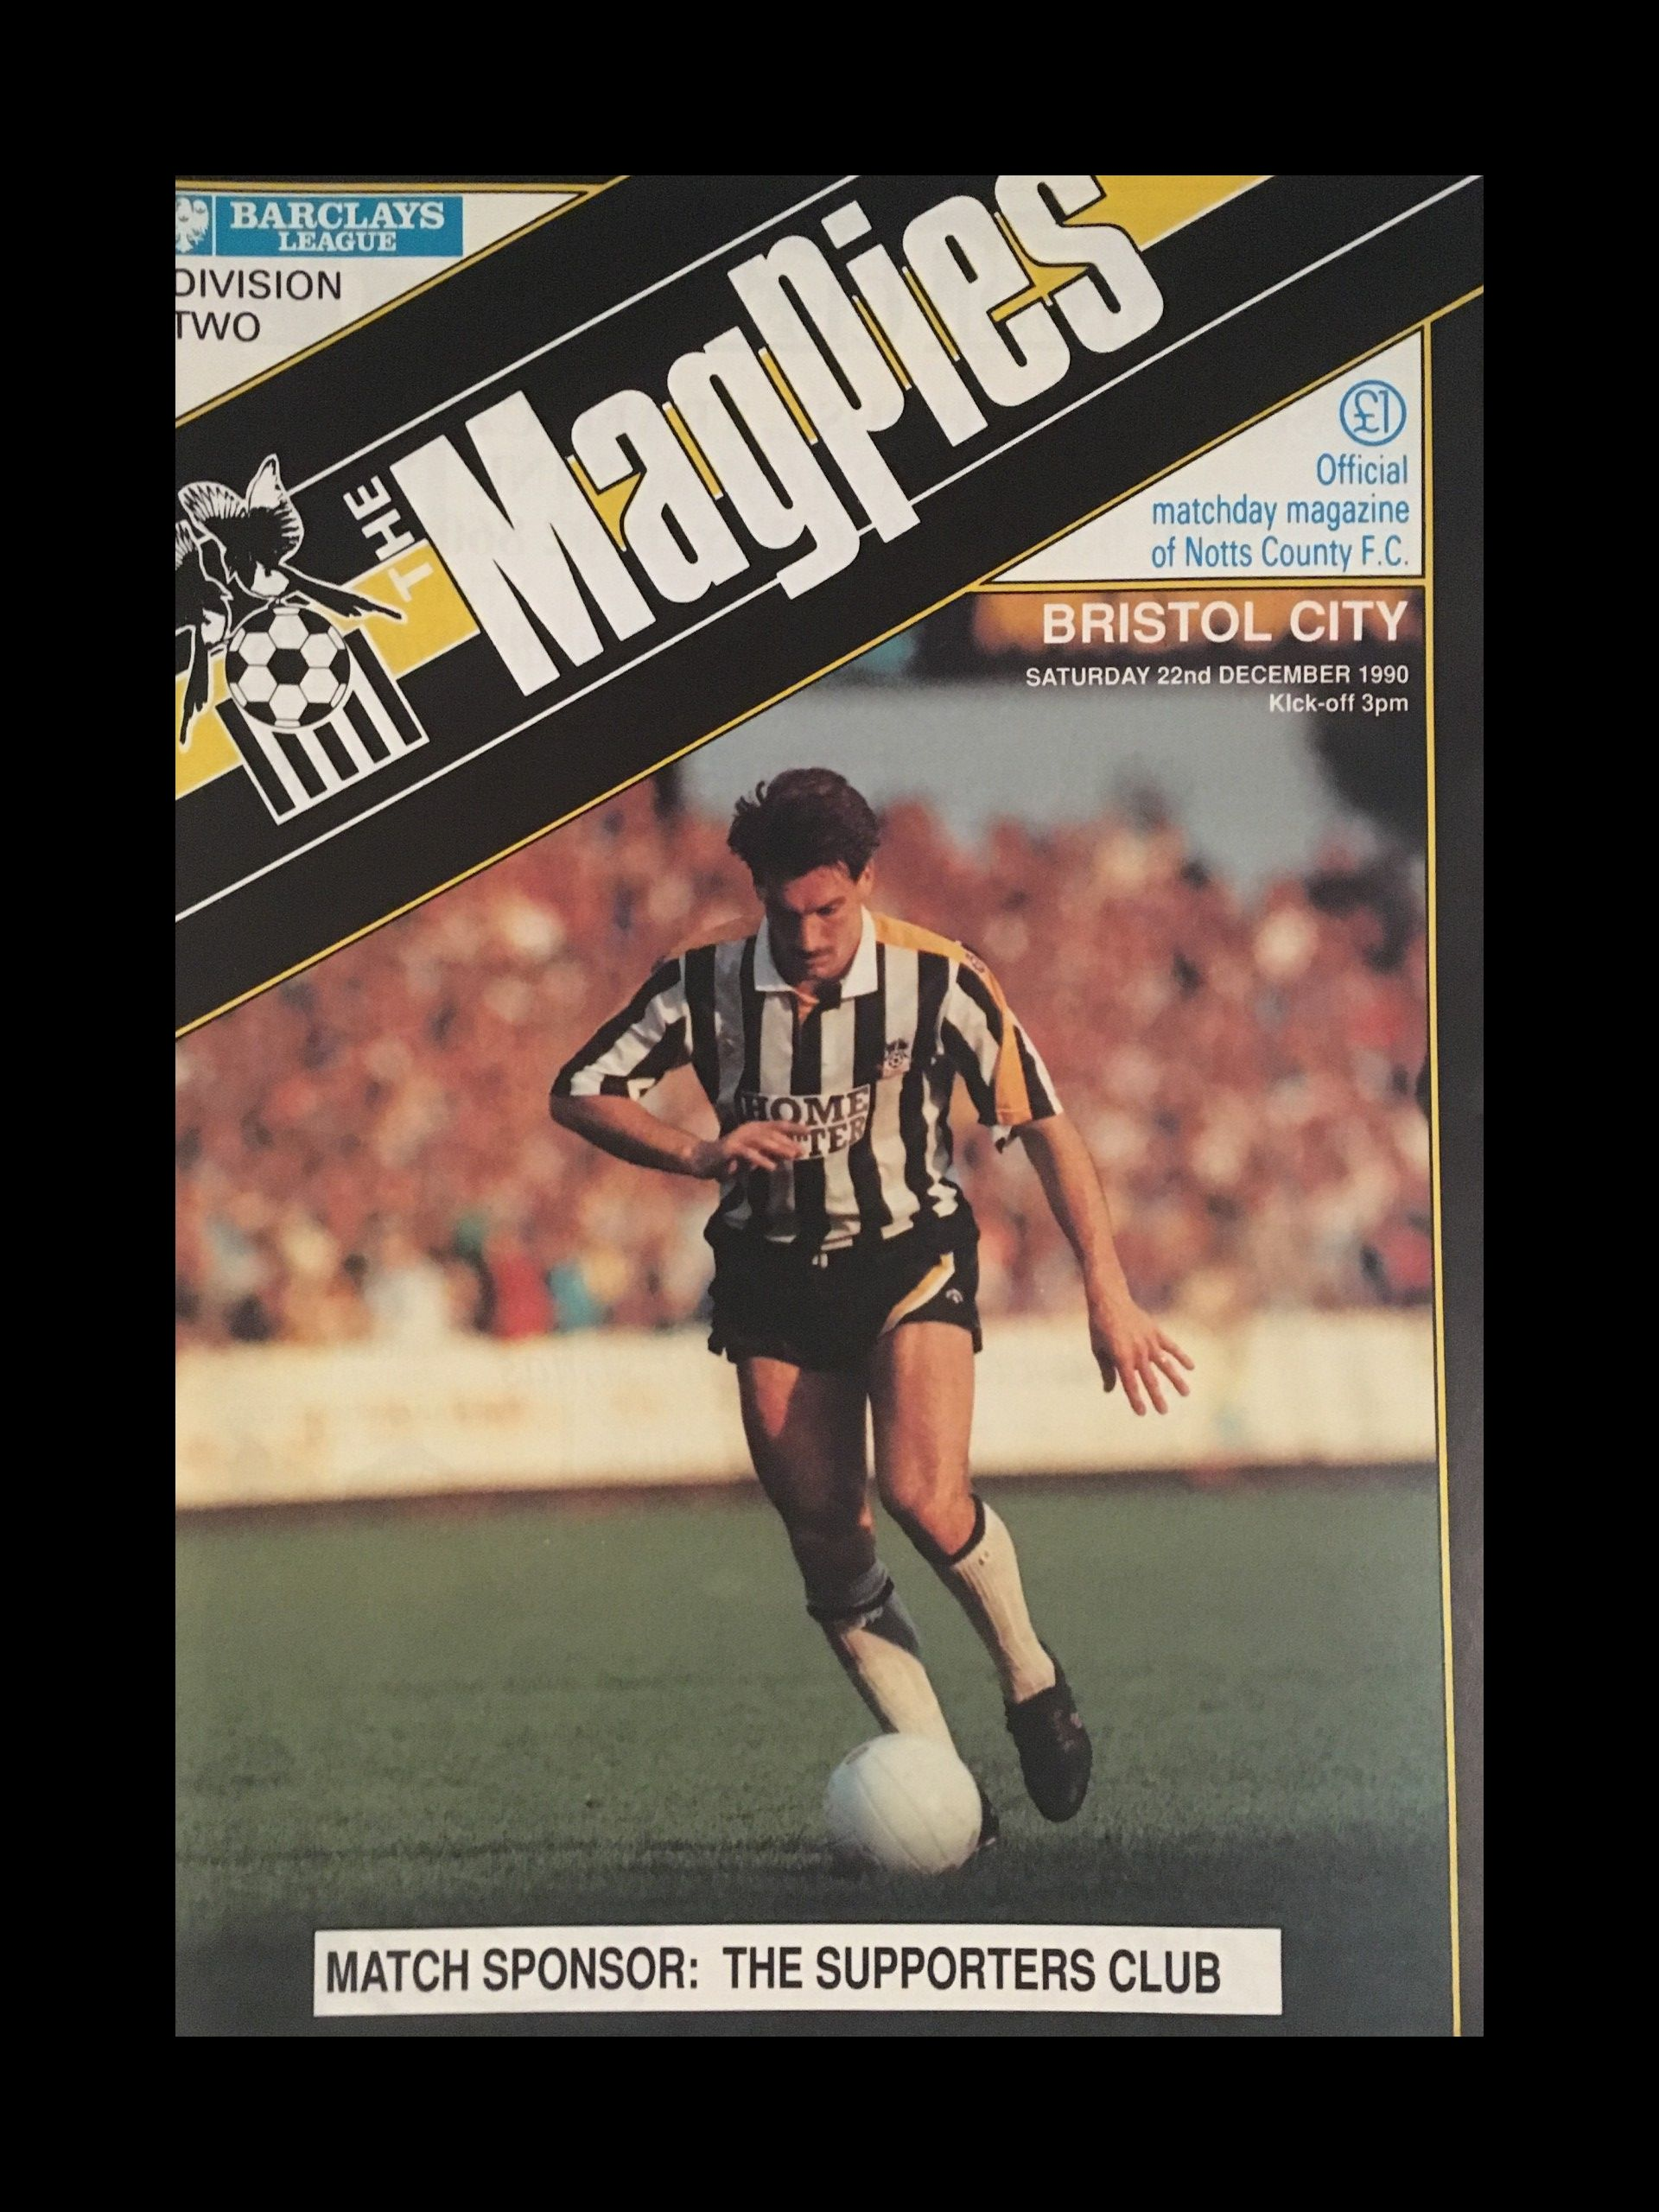 Notts County v Bristol City 22-12-1990 Programme